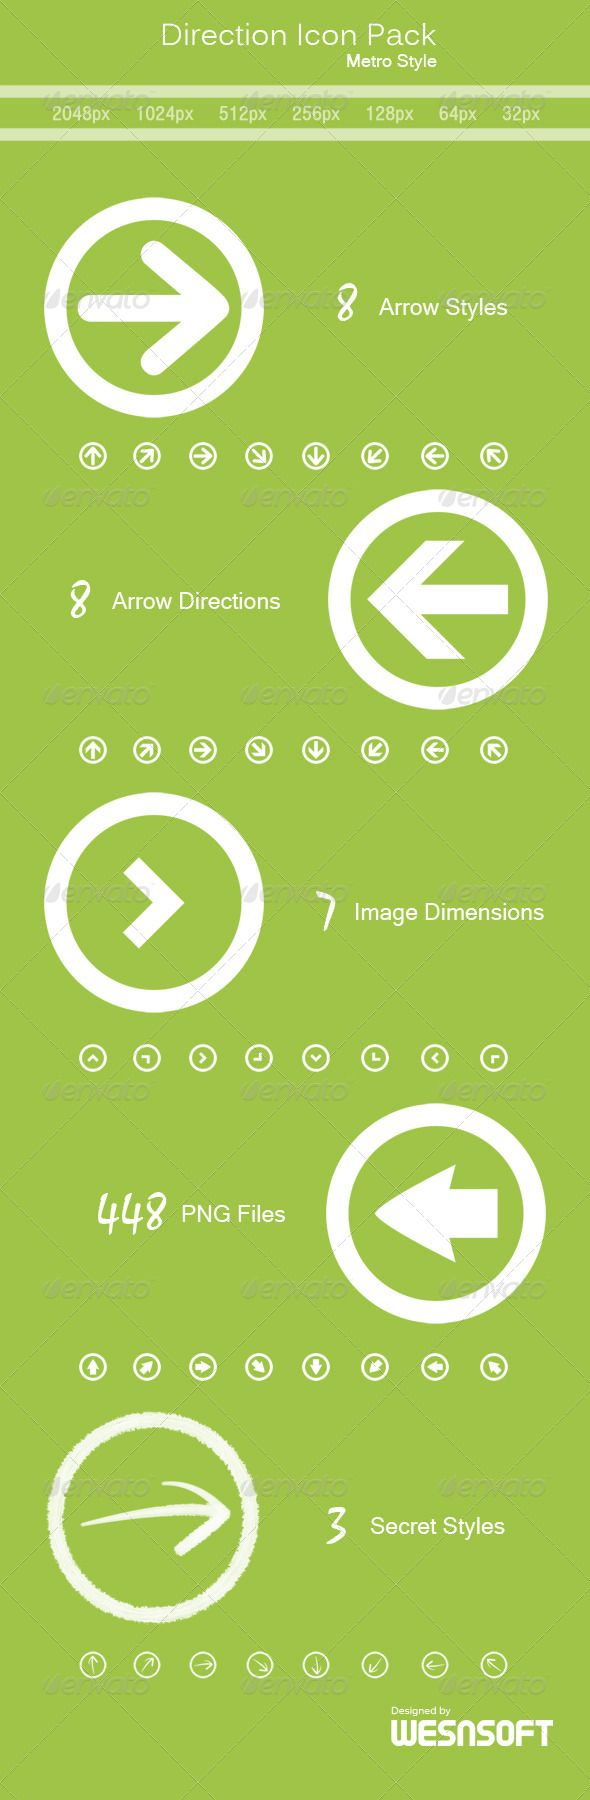 Direction Icon Pack (Metro Style) - Web Icons